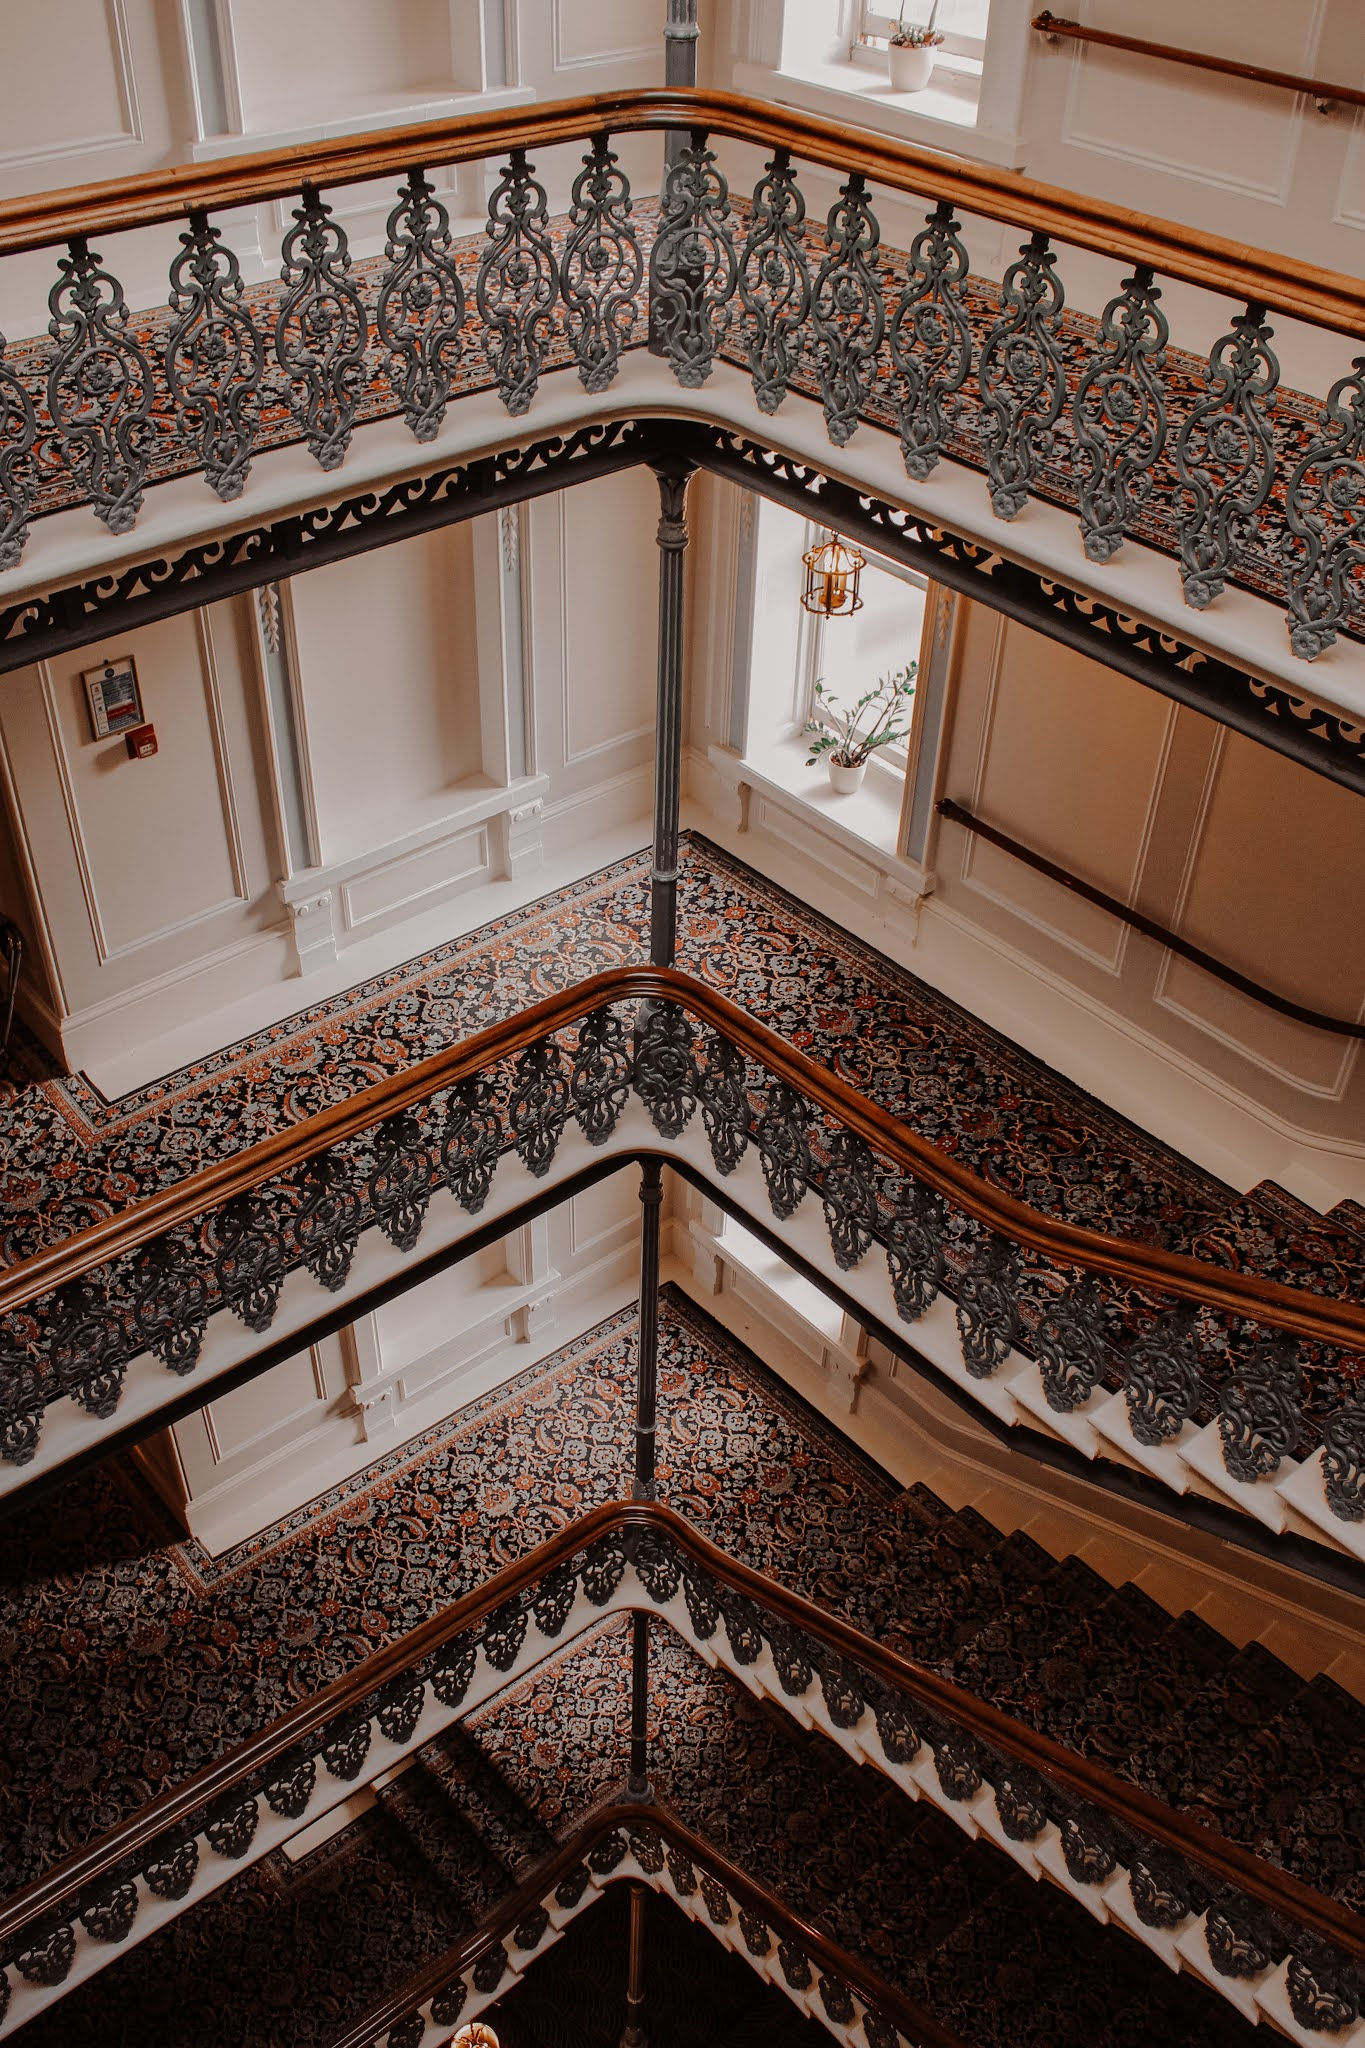 The Grand Brighton Hotel Staircase